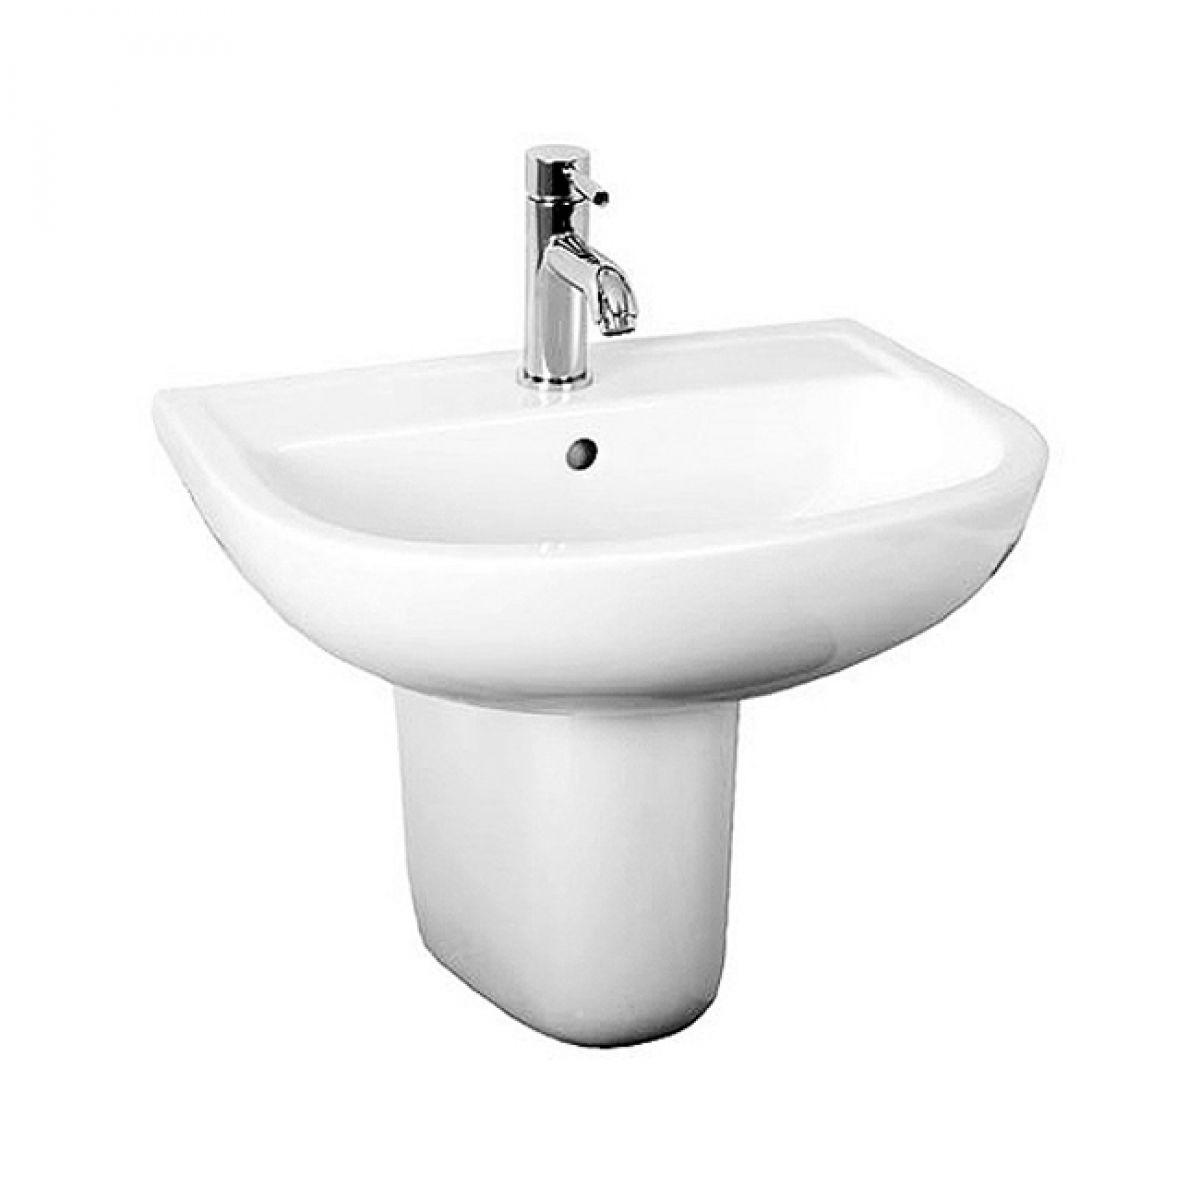 Small Wash Basin Price : RAK Compact Wash Basin 460mm : UK Bathrooms